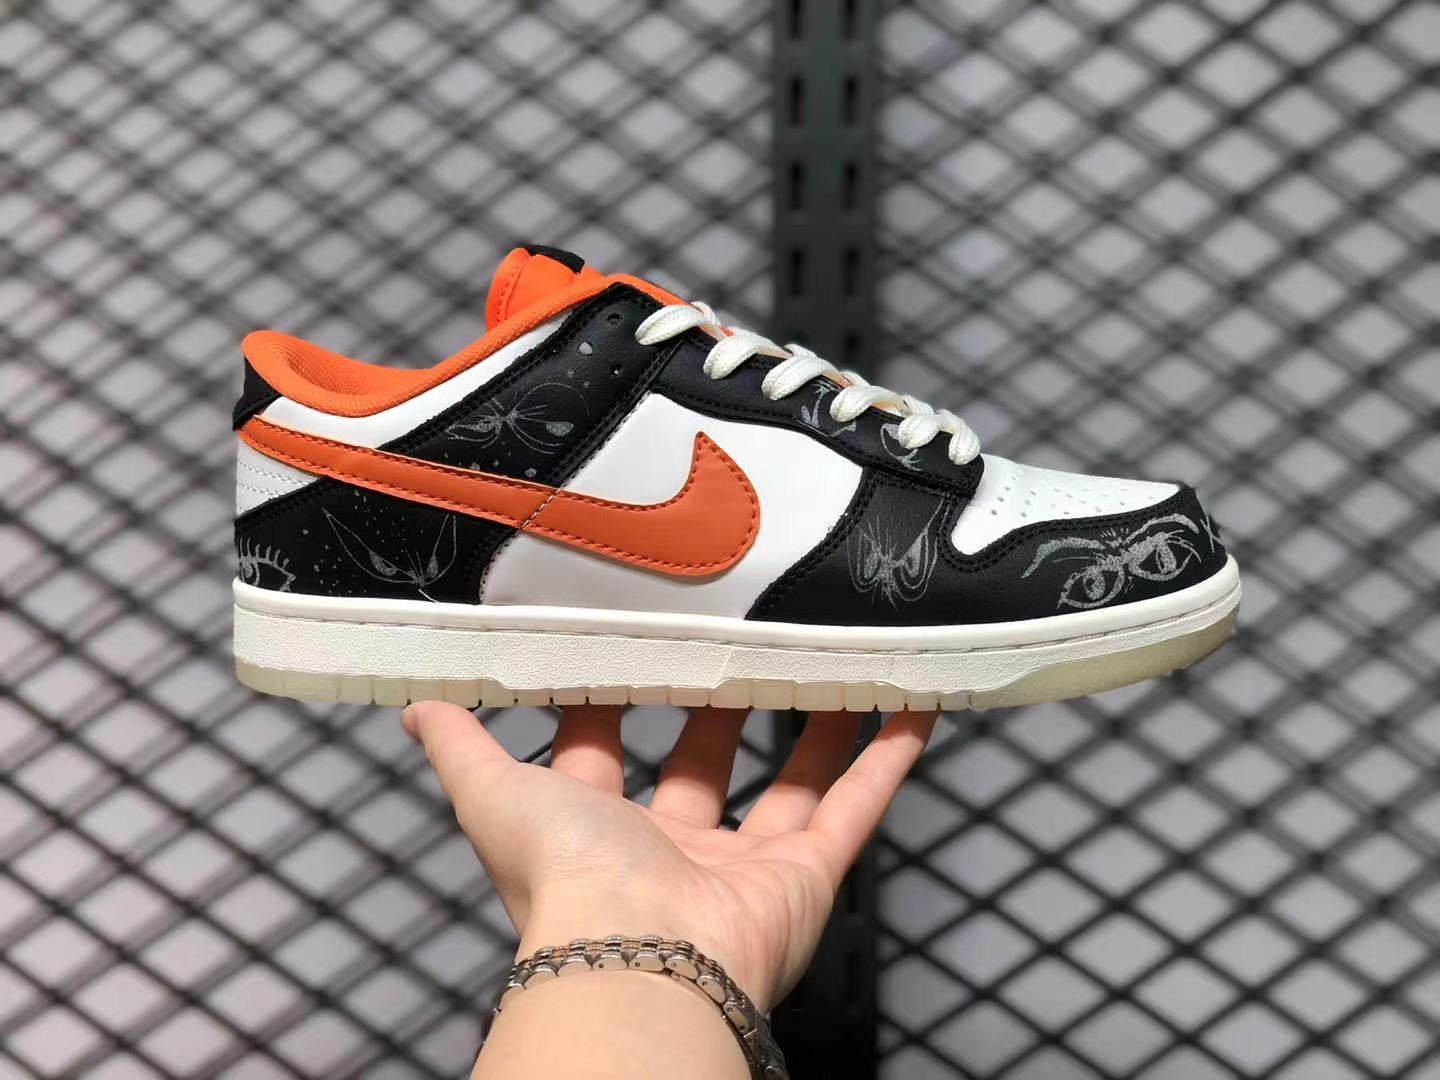 2021 Nike Dunk Low Halloween DD3357-100 Outlet